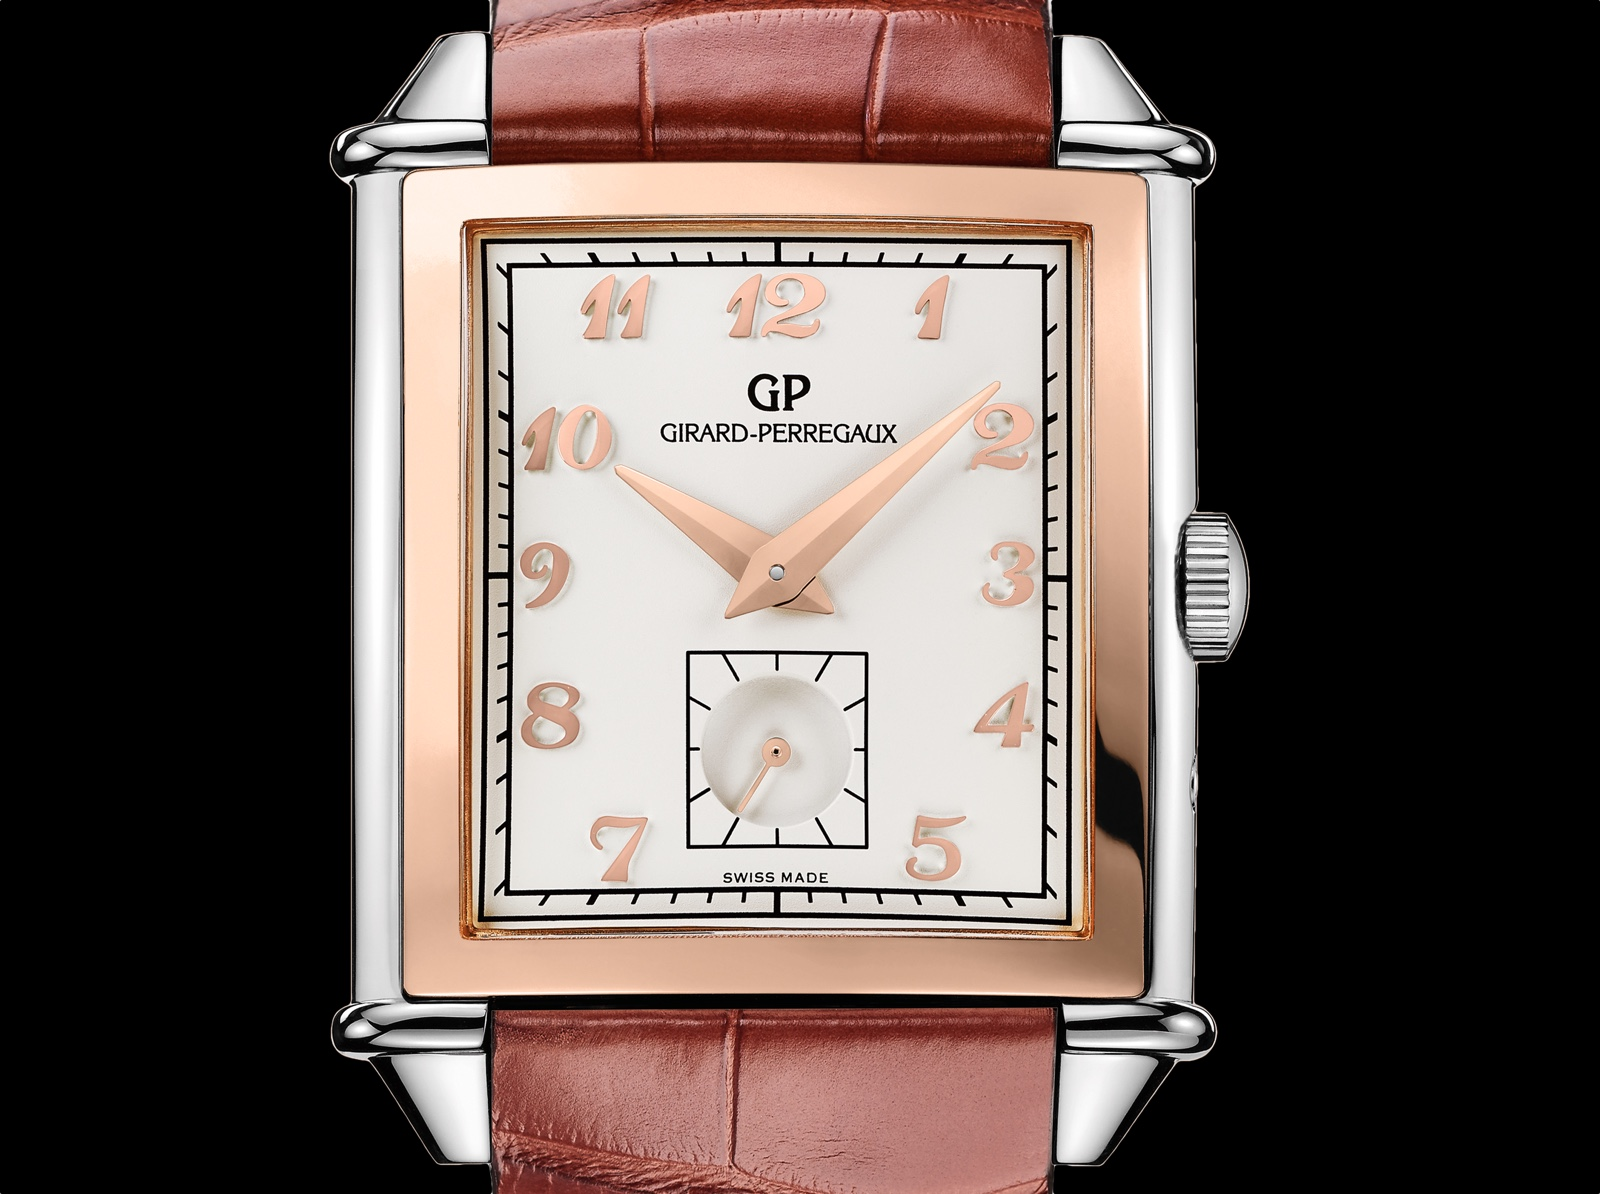 Girard-Perregaux-70-Anniversary-Vintage-1945-Face